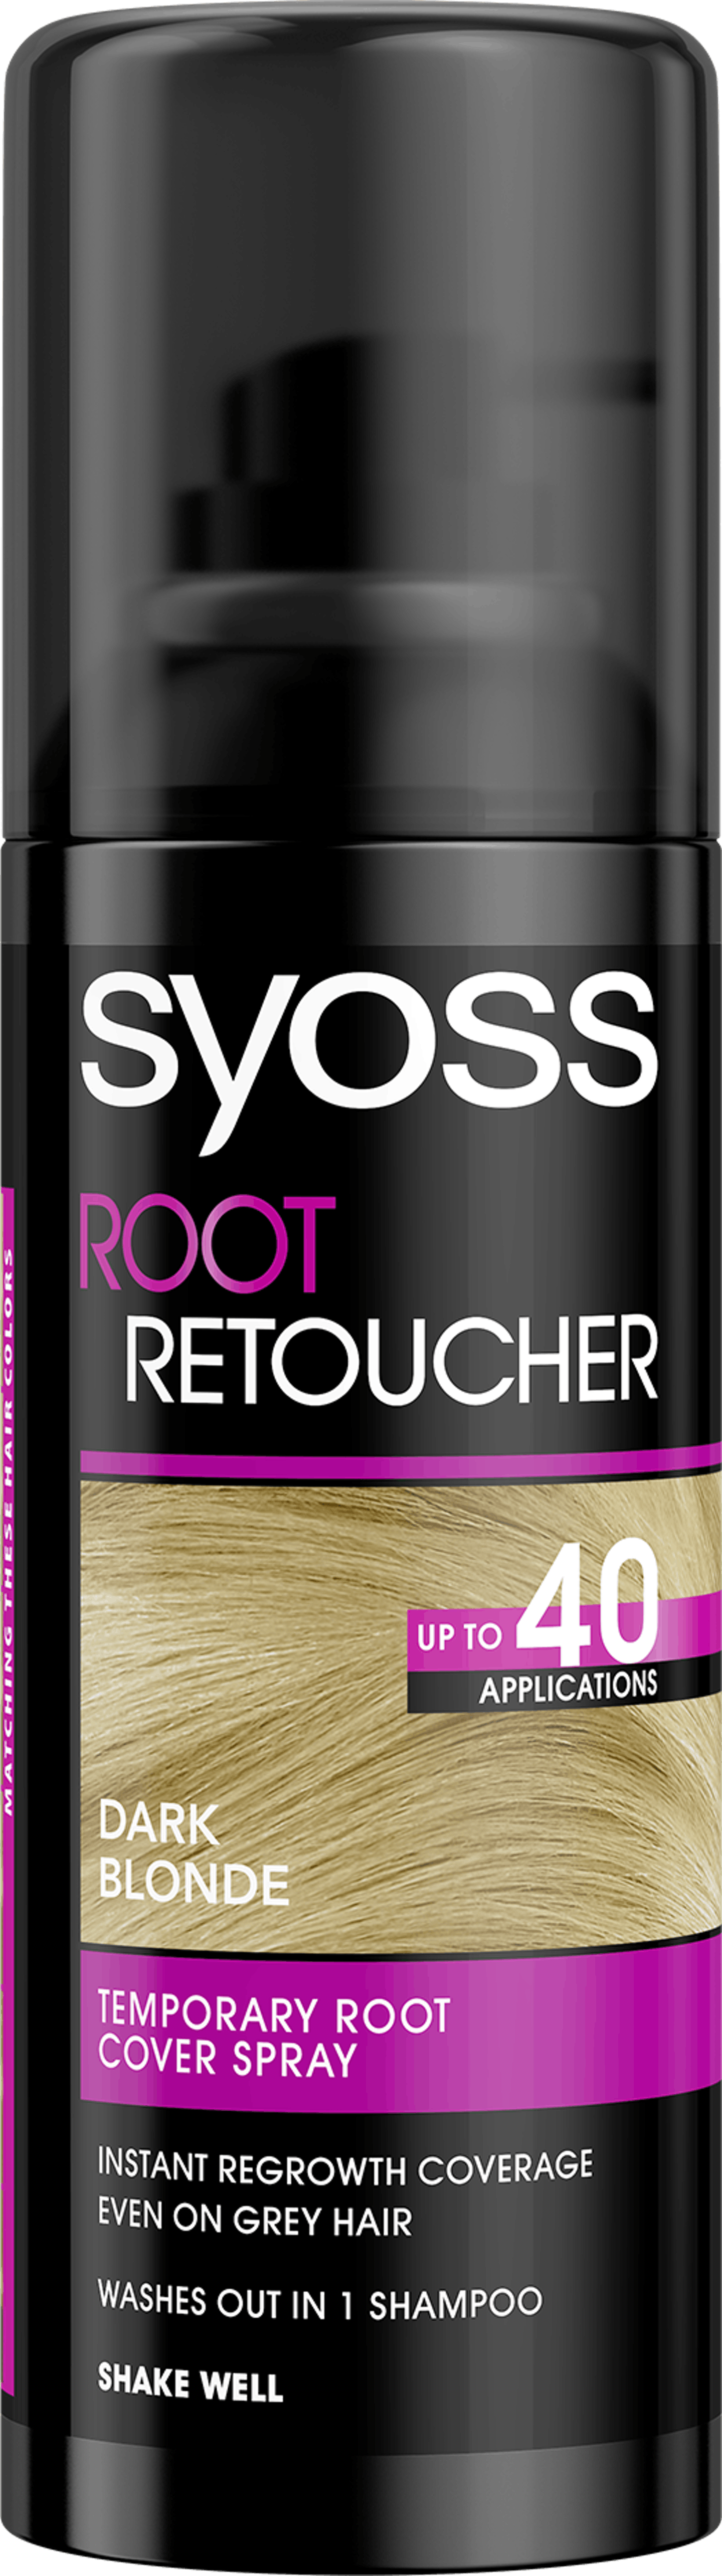 Syoss Root Retoucher Dark Blonde